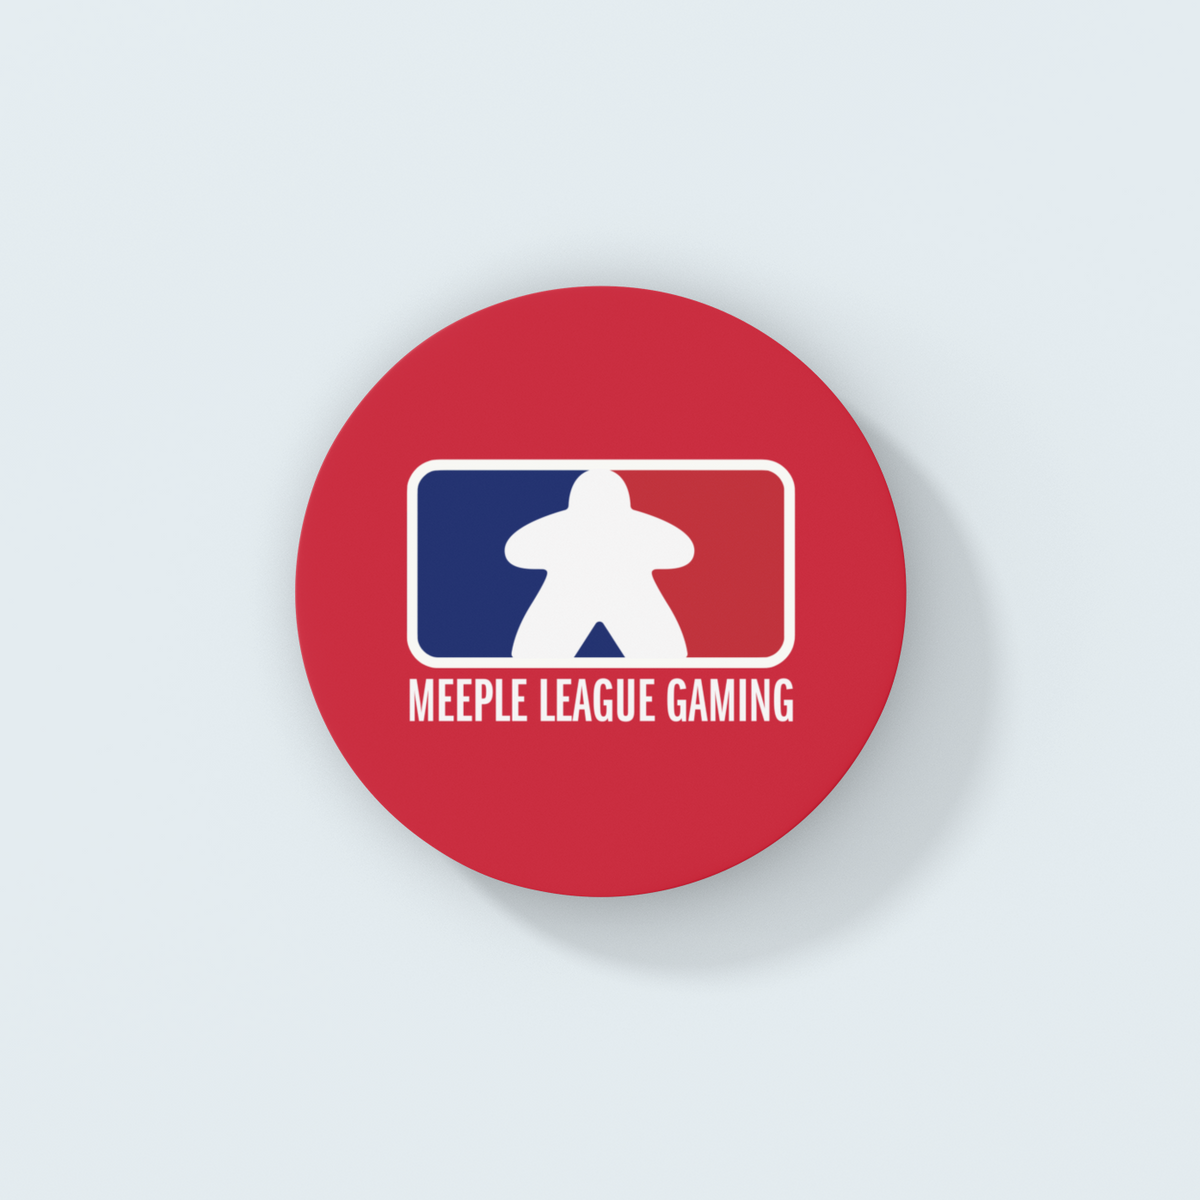 Meeple League Gaming Board Game Coaster